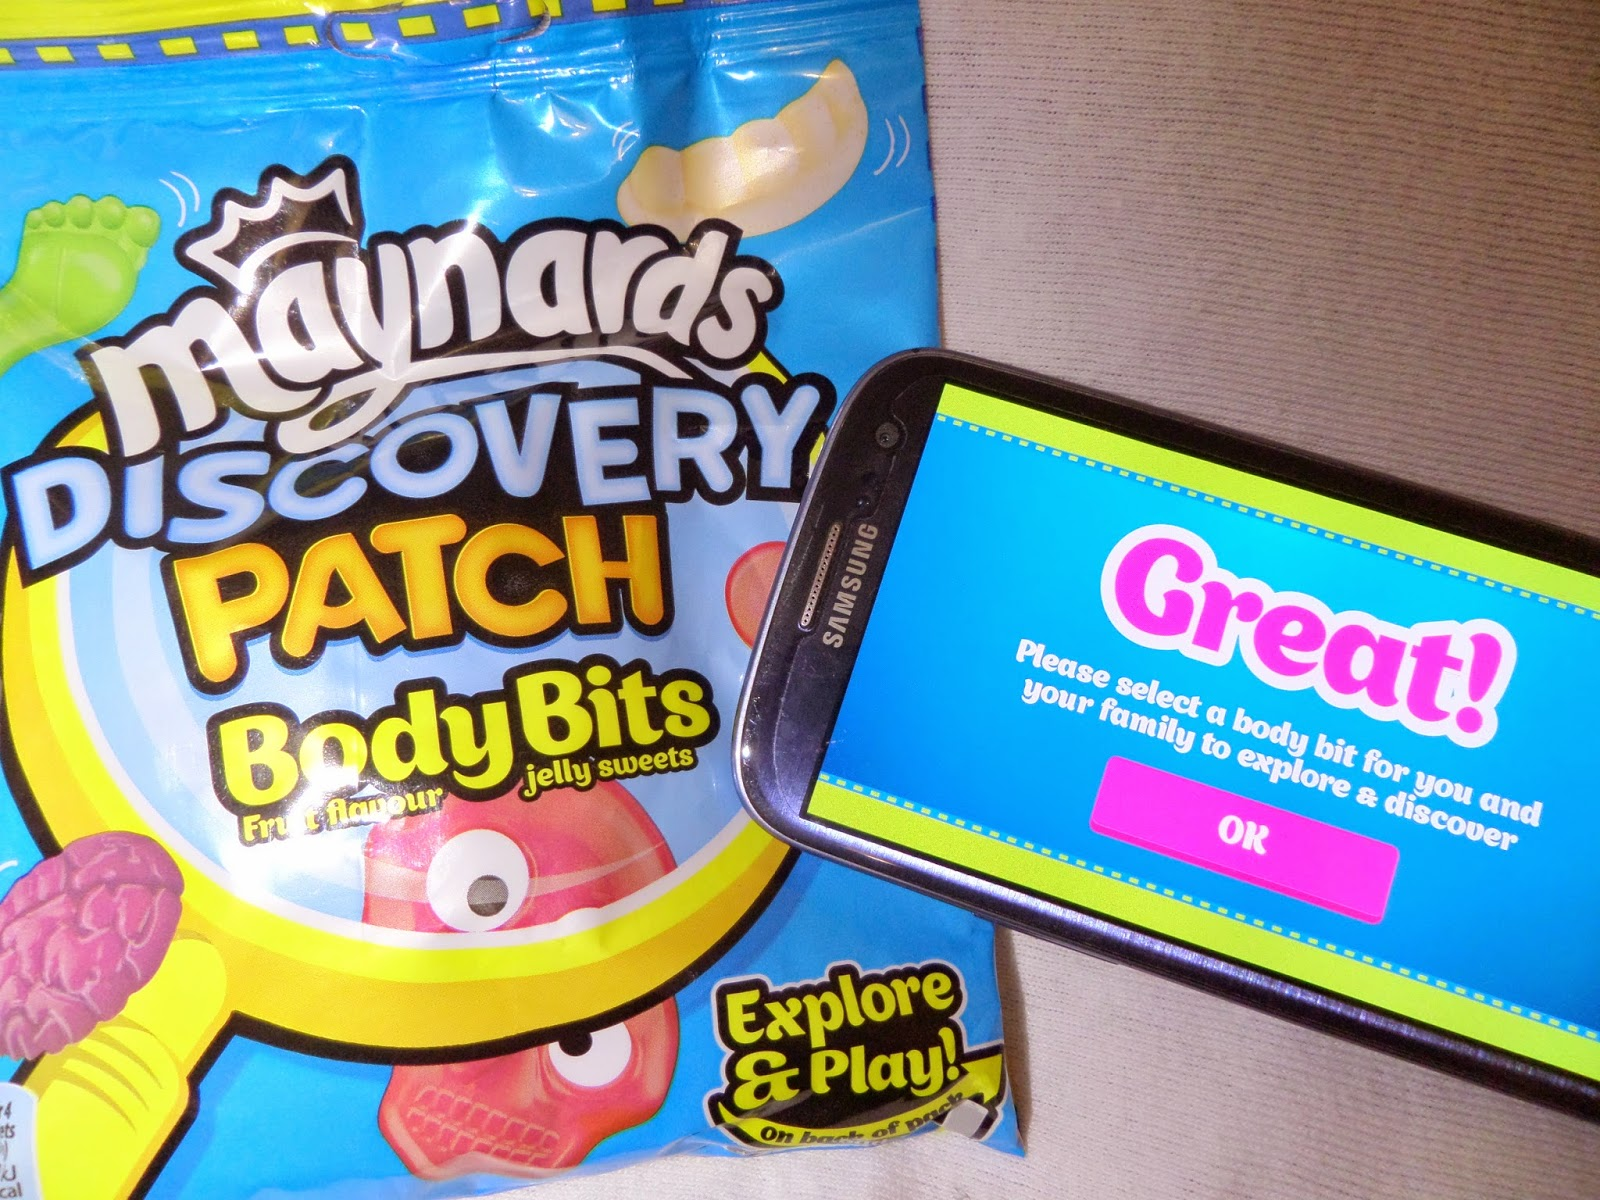 #DiscoveryPatch, sweets, educational app, technology, imagination